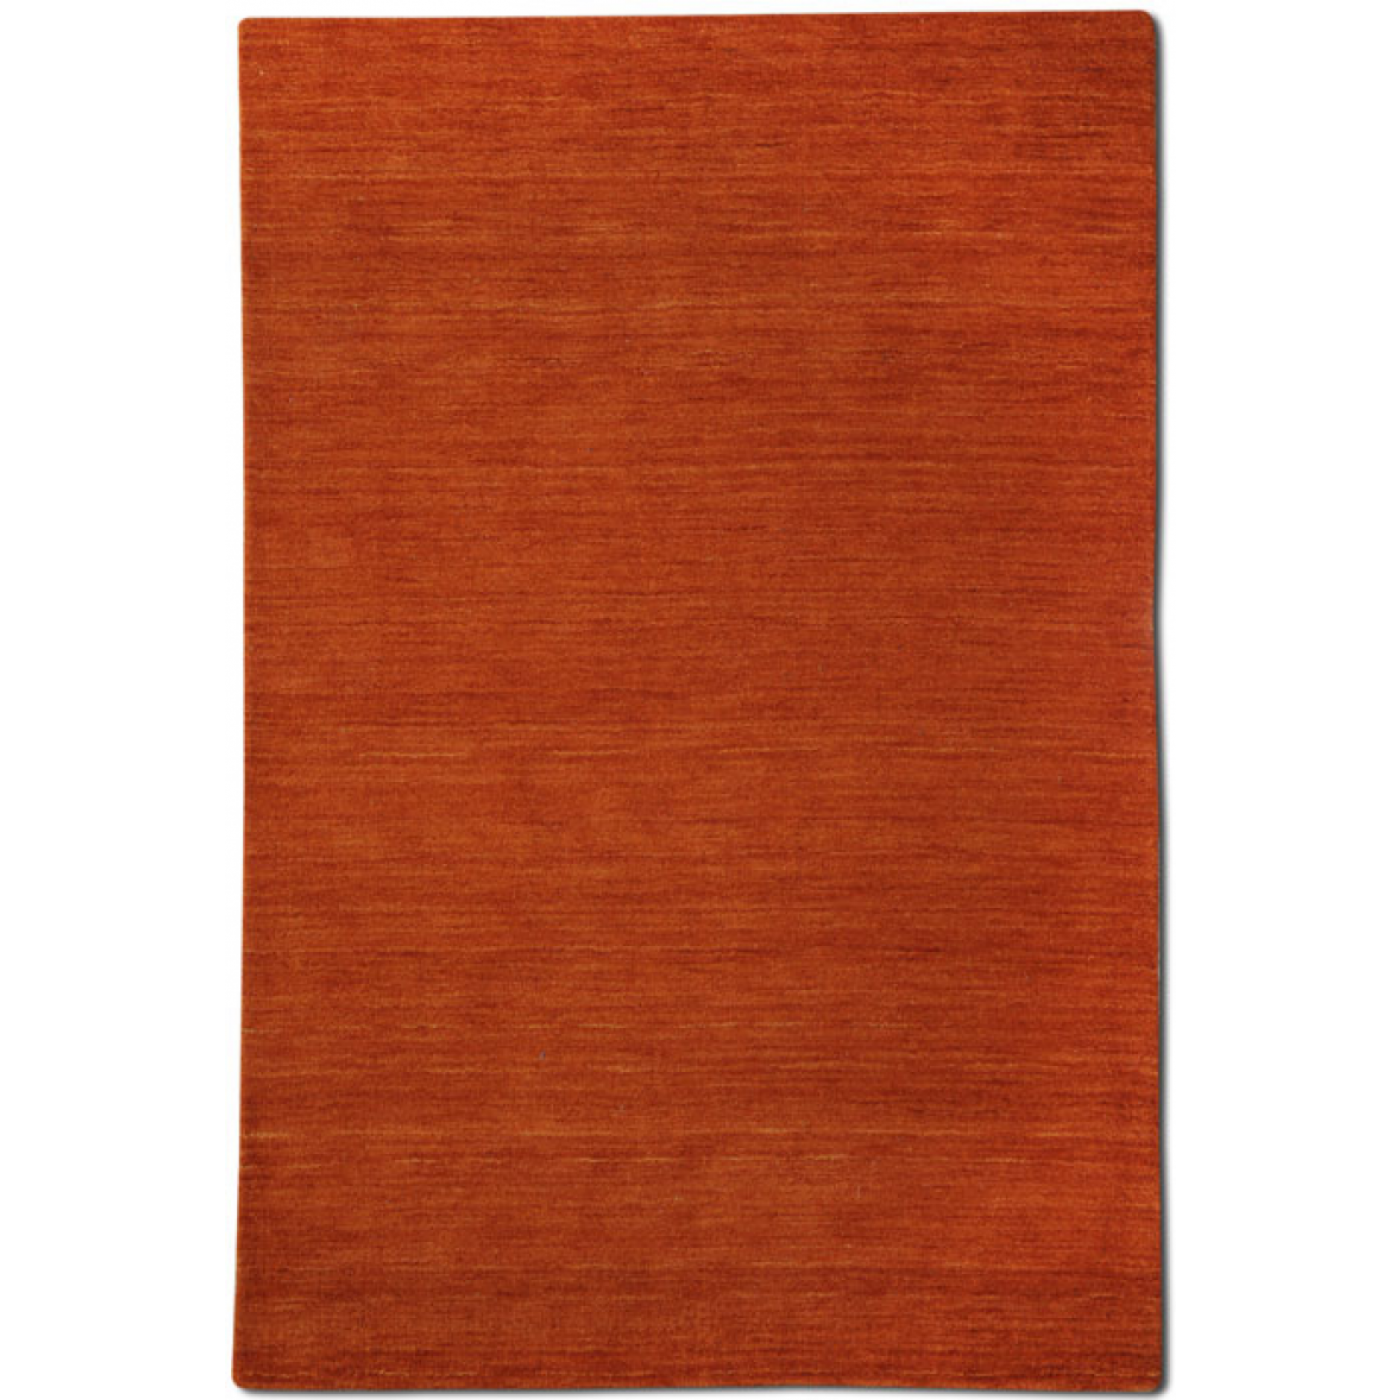 Vloerkleed Roma orange